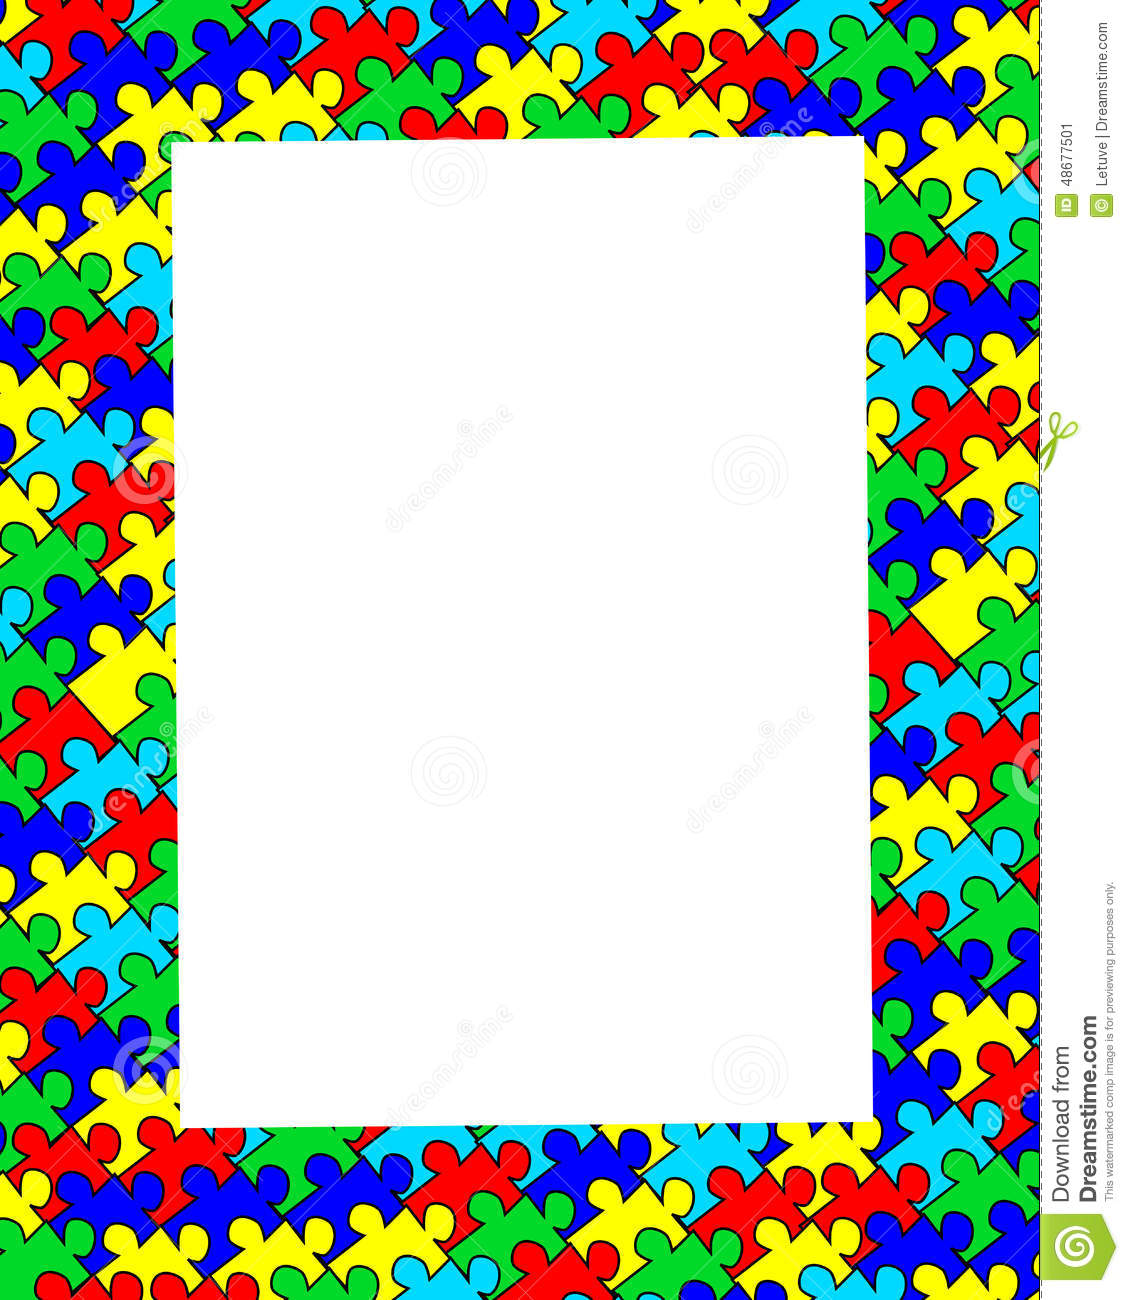 autism jigsaw border frame stock illustration illustration of